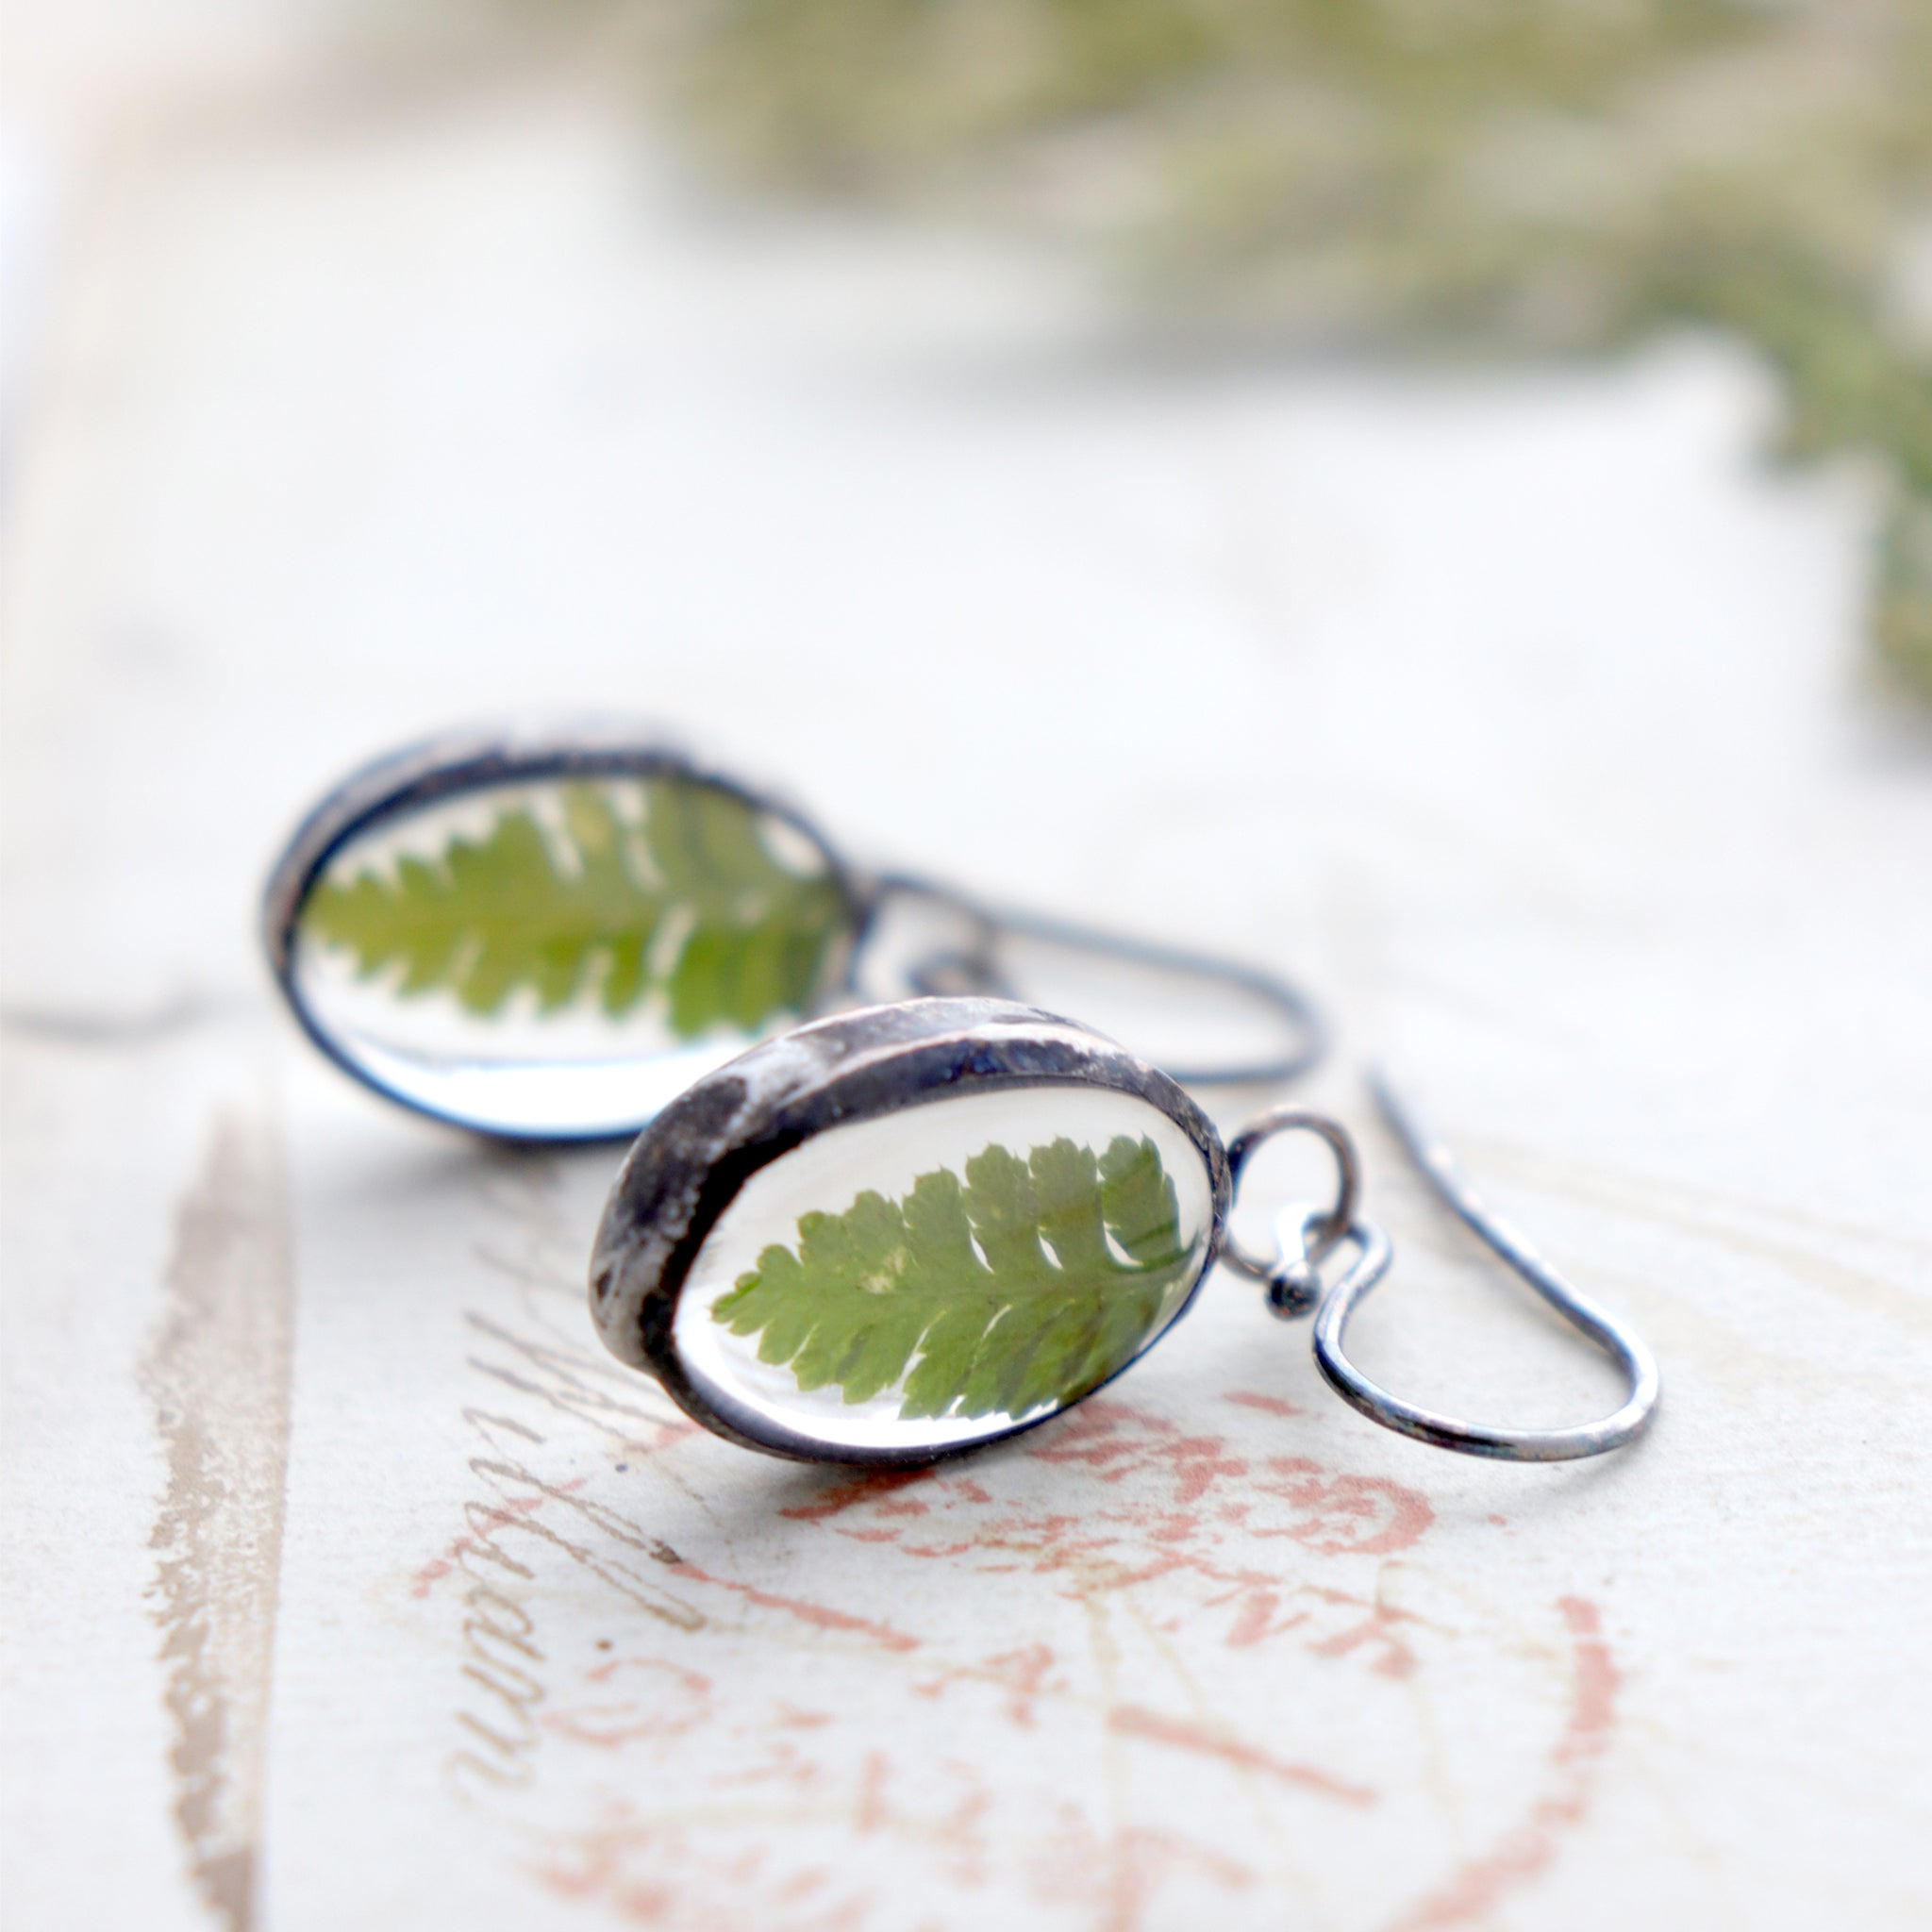 Earrings with real fern lying on an old letter